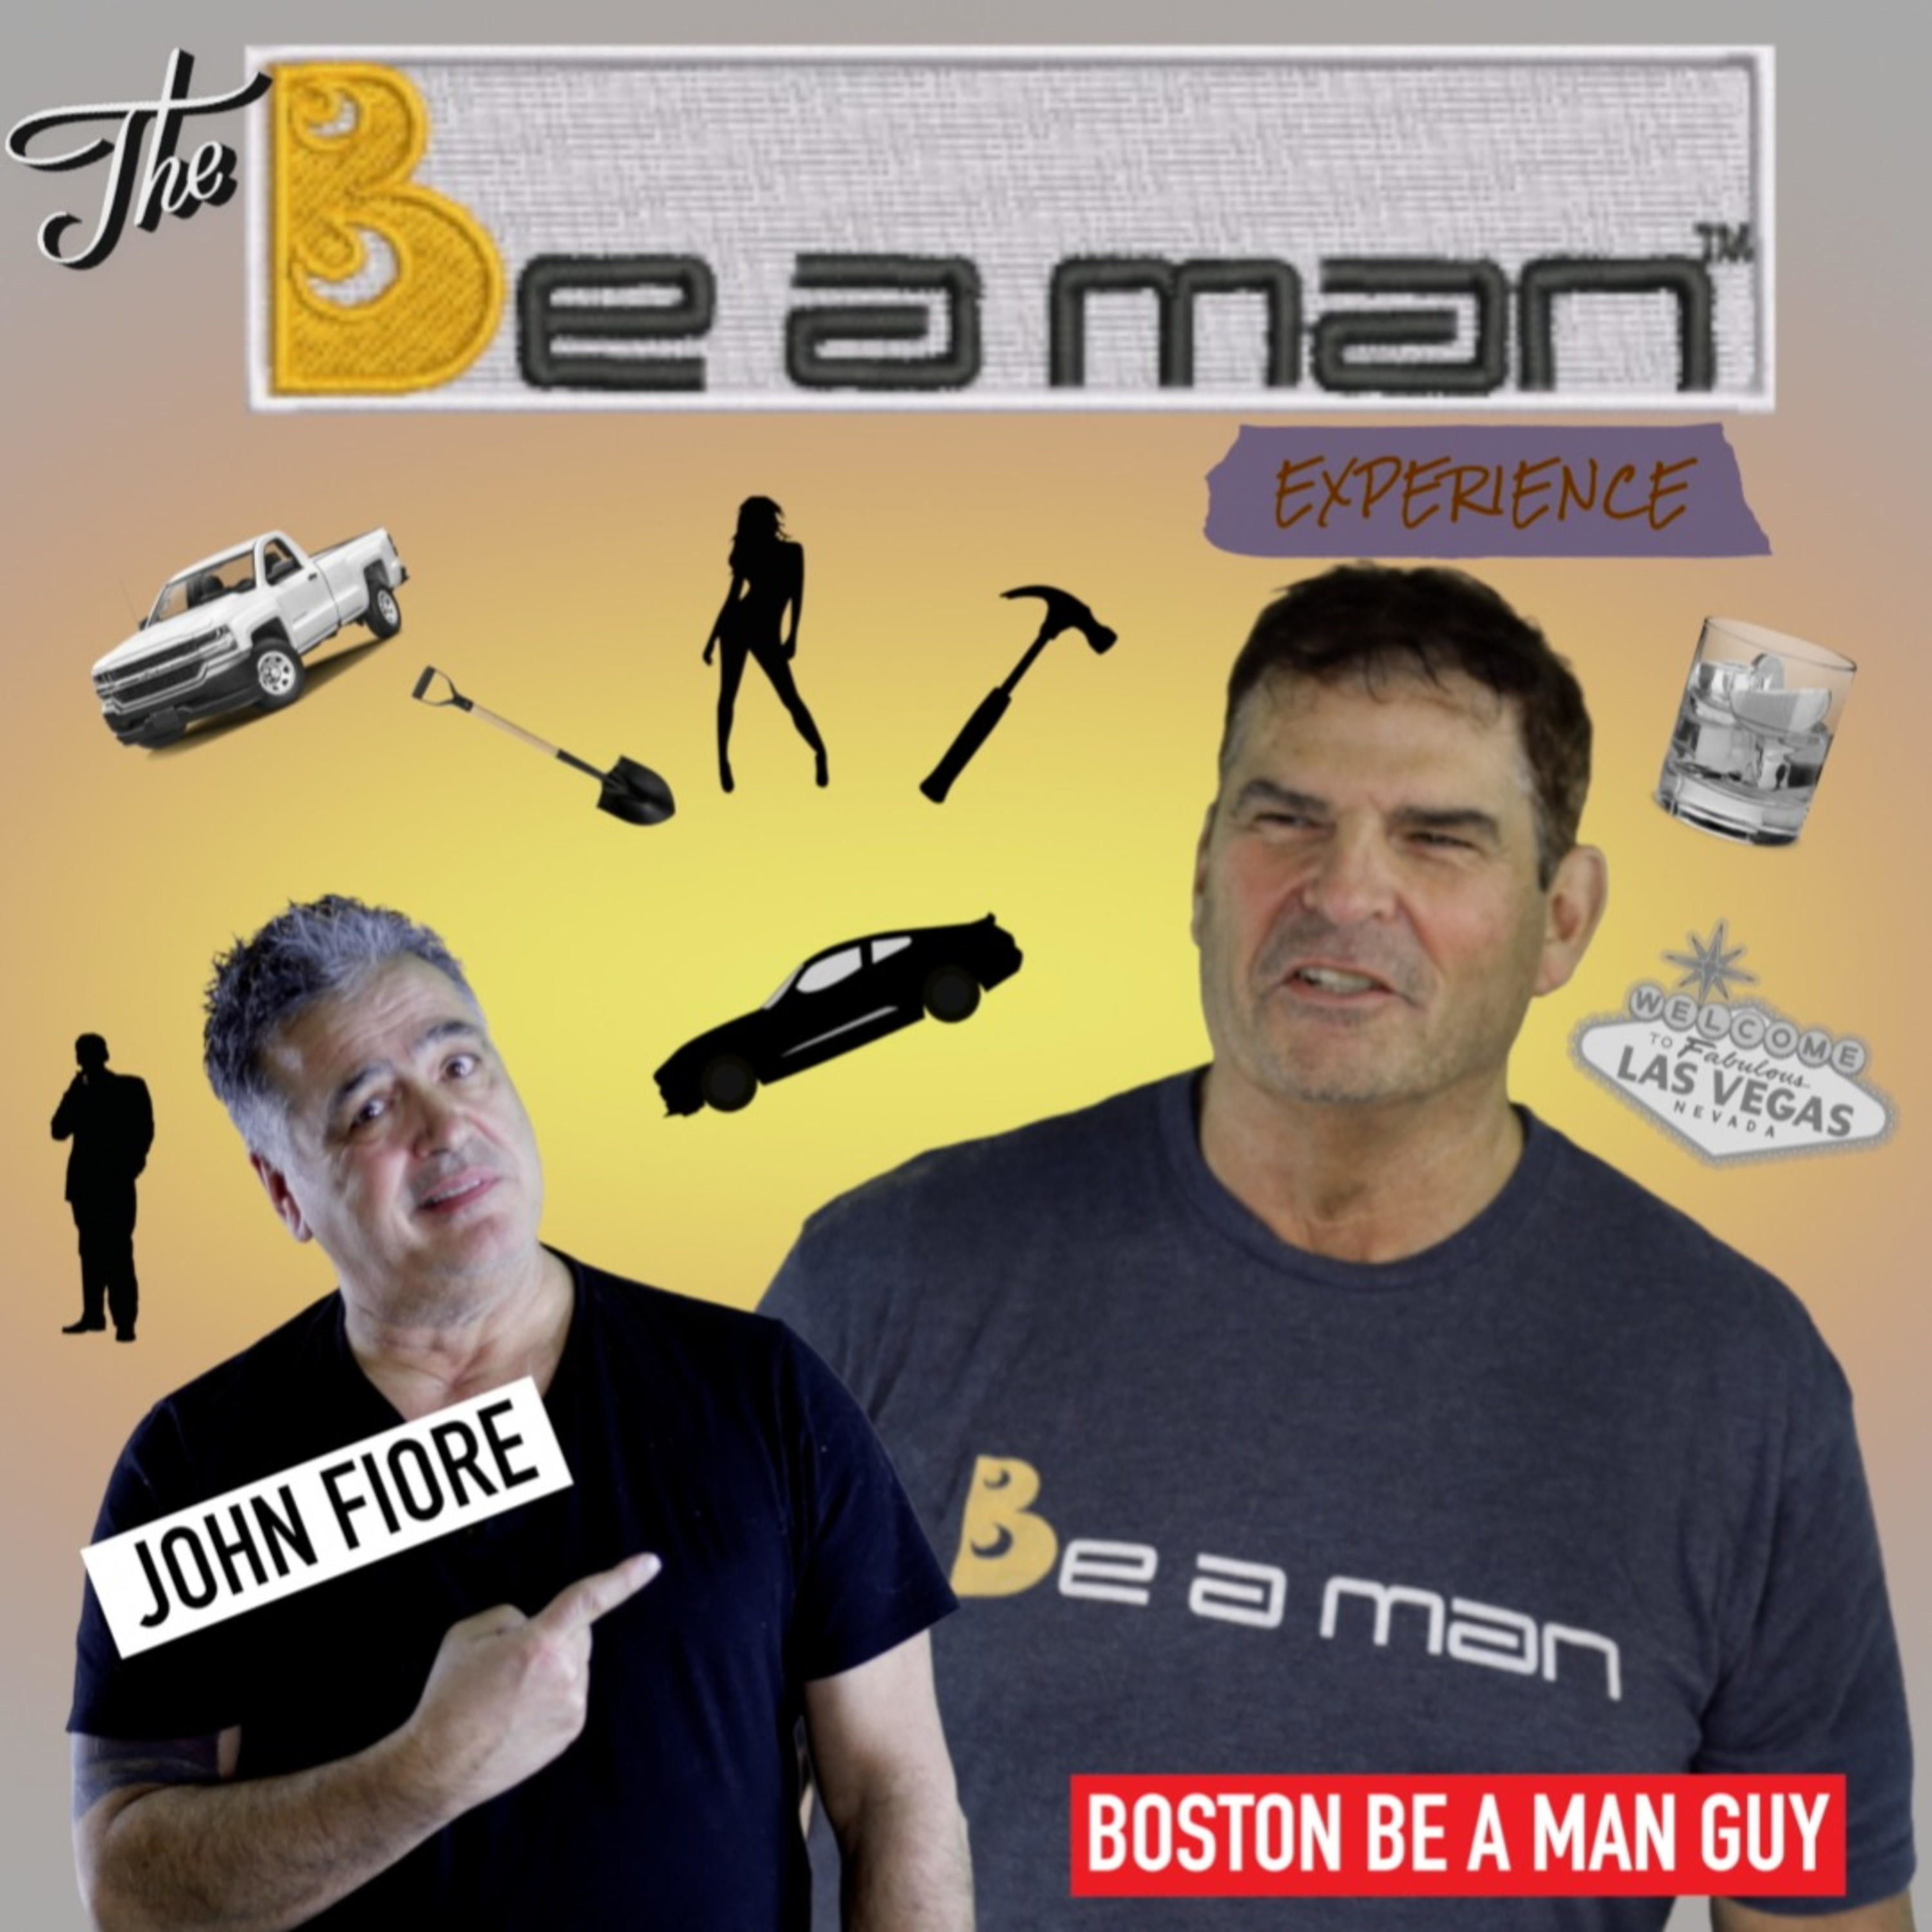 #004 Being a Hero (The Be A Man Experience)